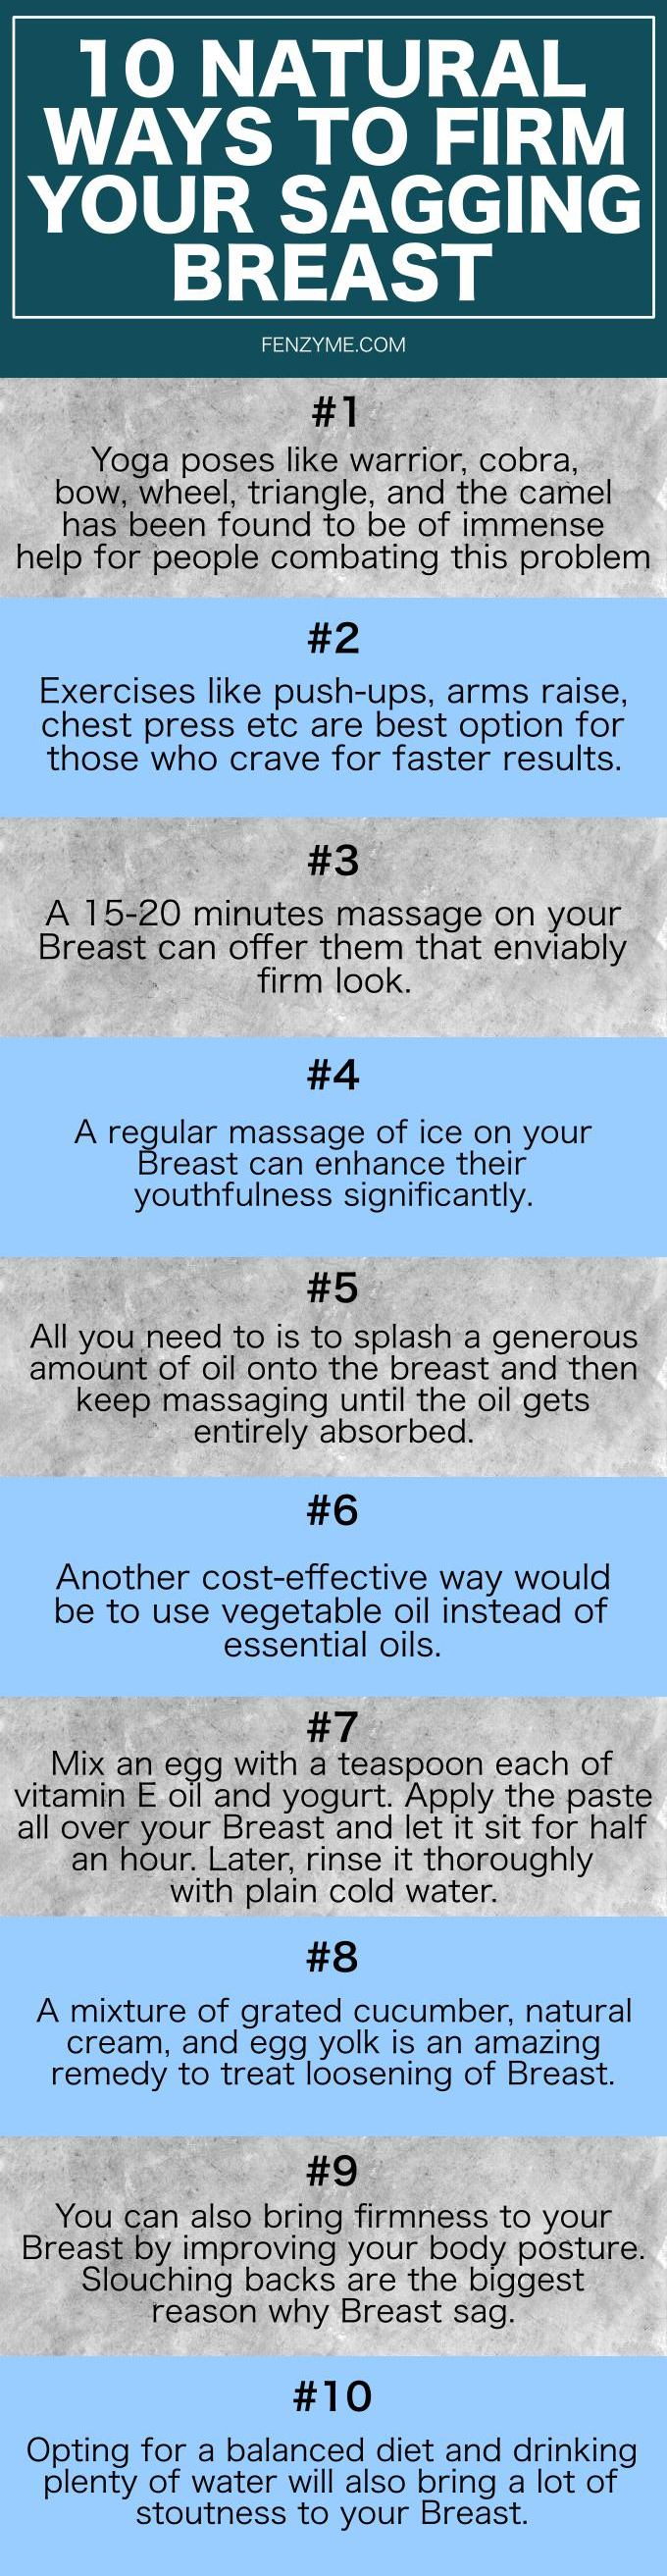 Natural ways to firm your sagging breast